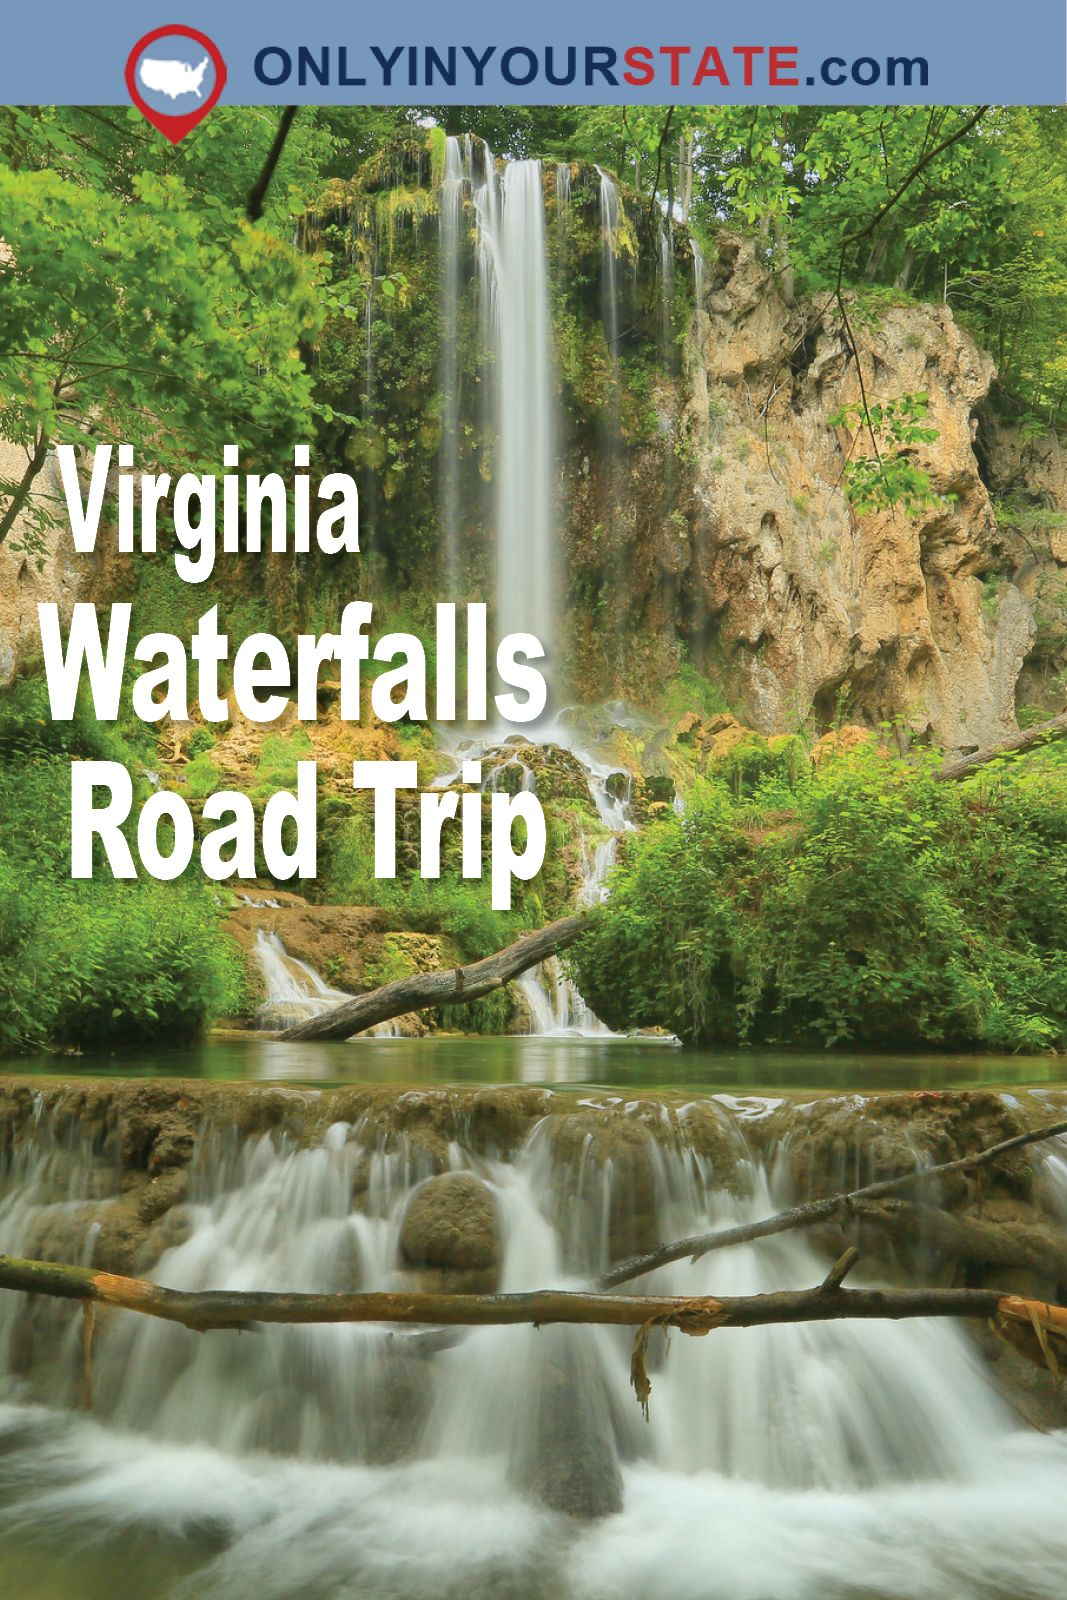 The Ultimate Virginia Waterfall Road Trip Will Take You To